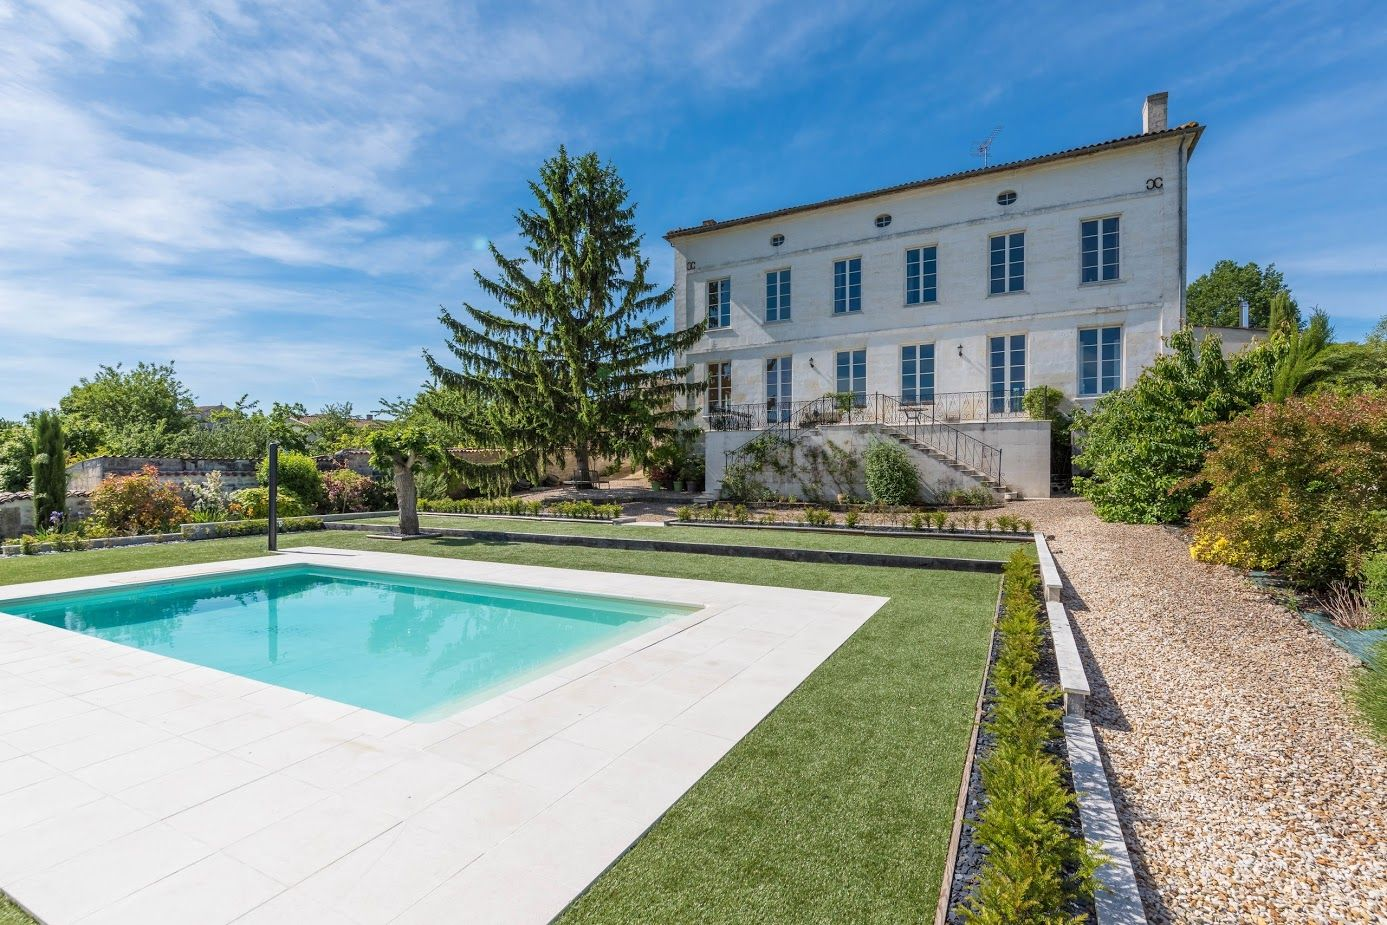 Delightful Le Grand Logis, Bordeaux, Aquitaine, South West France. A Rare Holiday  Rental